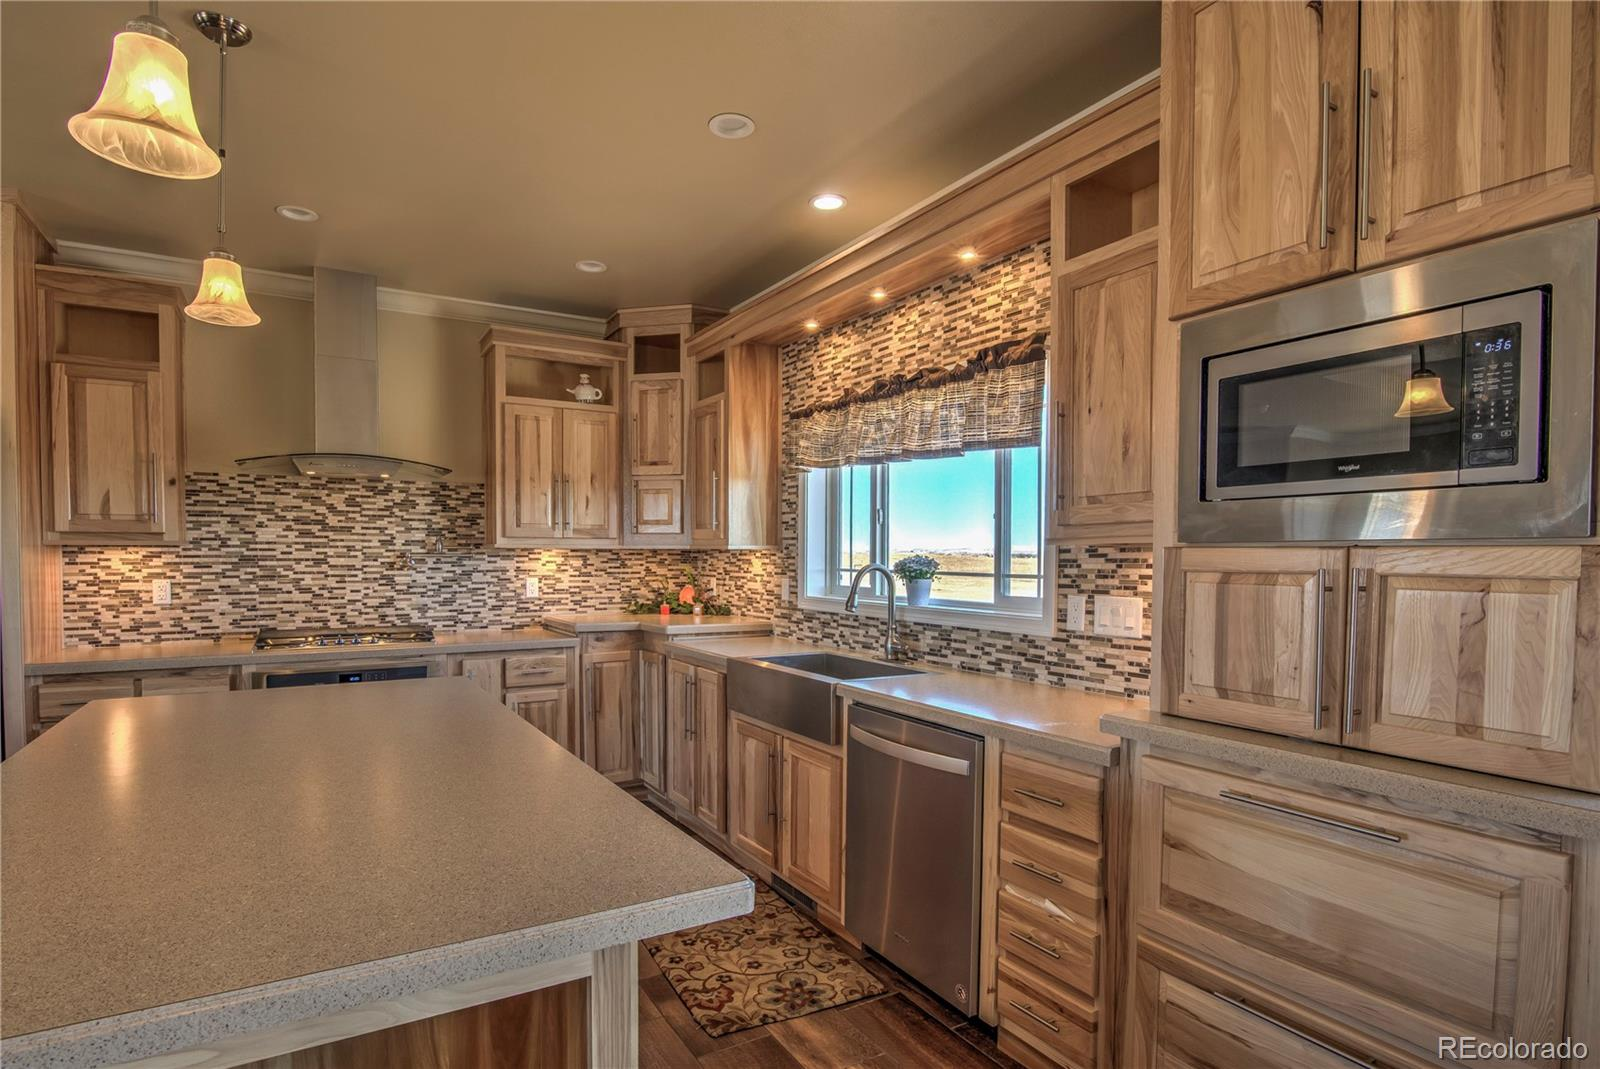 MLS# 8441040 - 6 - 595 Spotted Owl Way, Calhan, CO 80808